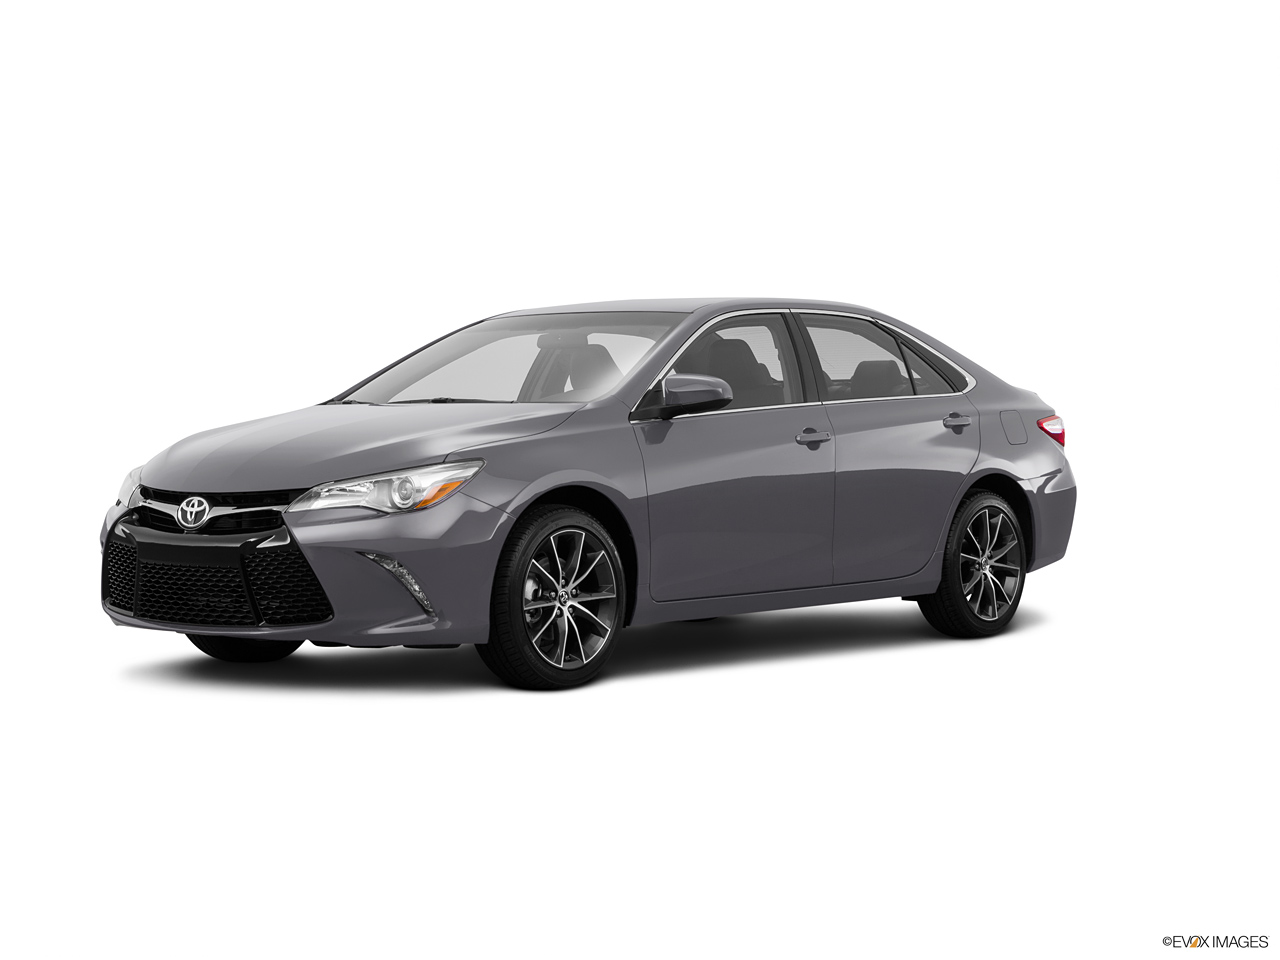 Toyota camry new 2.5L